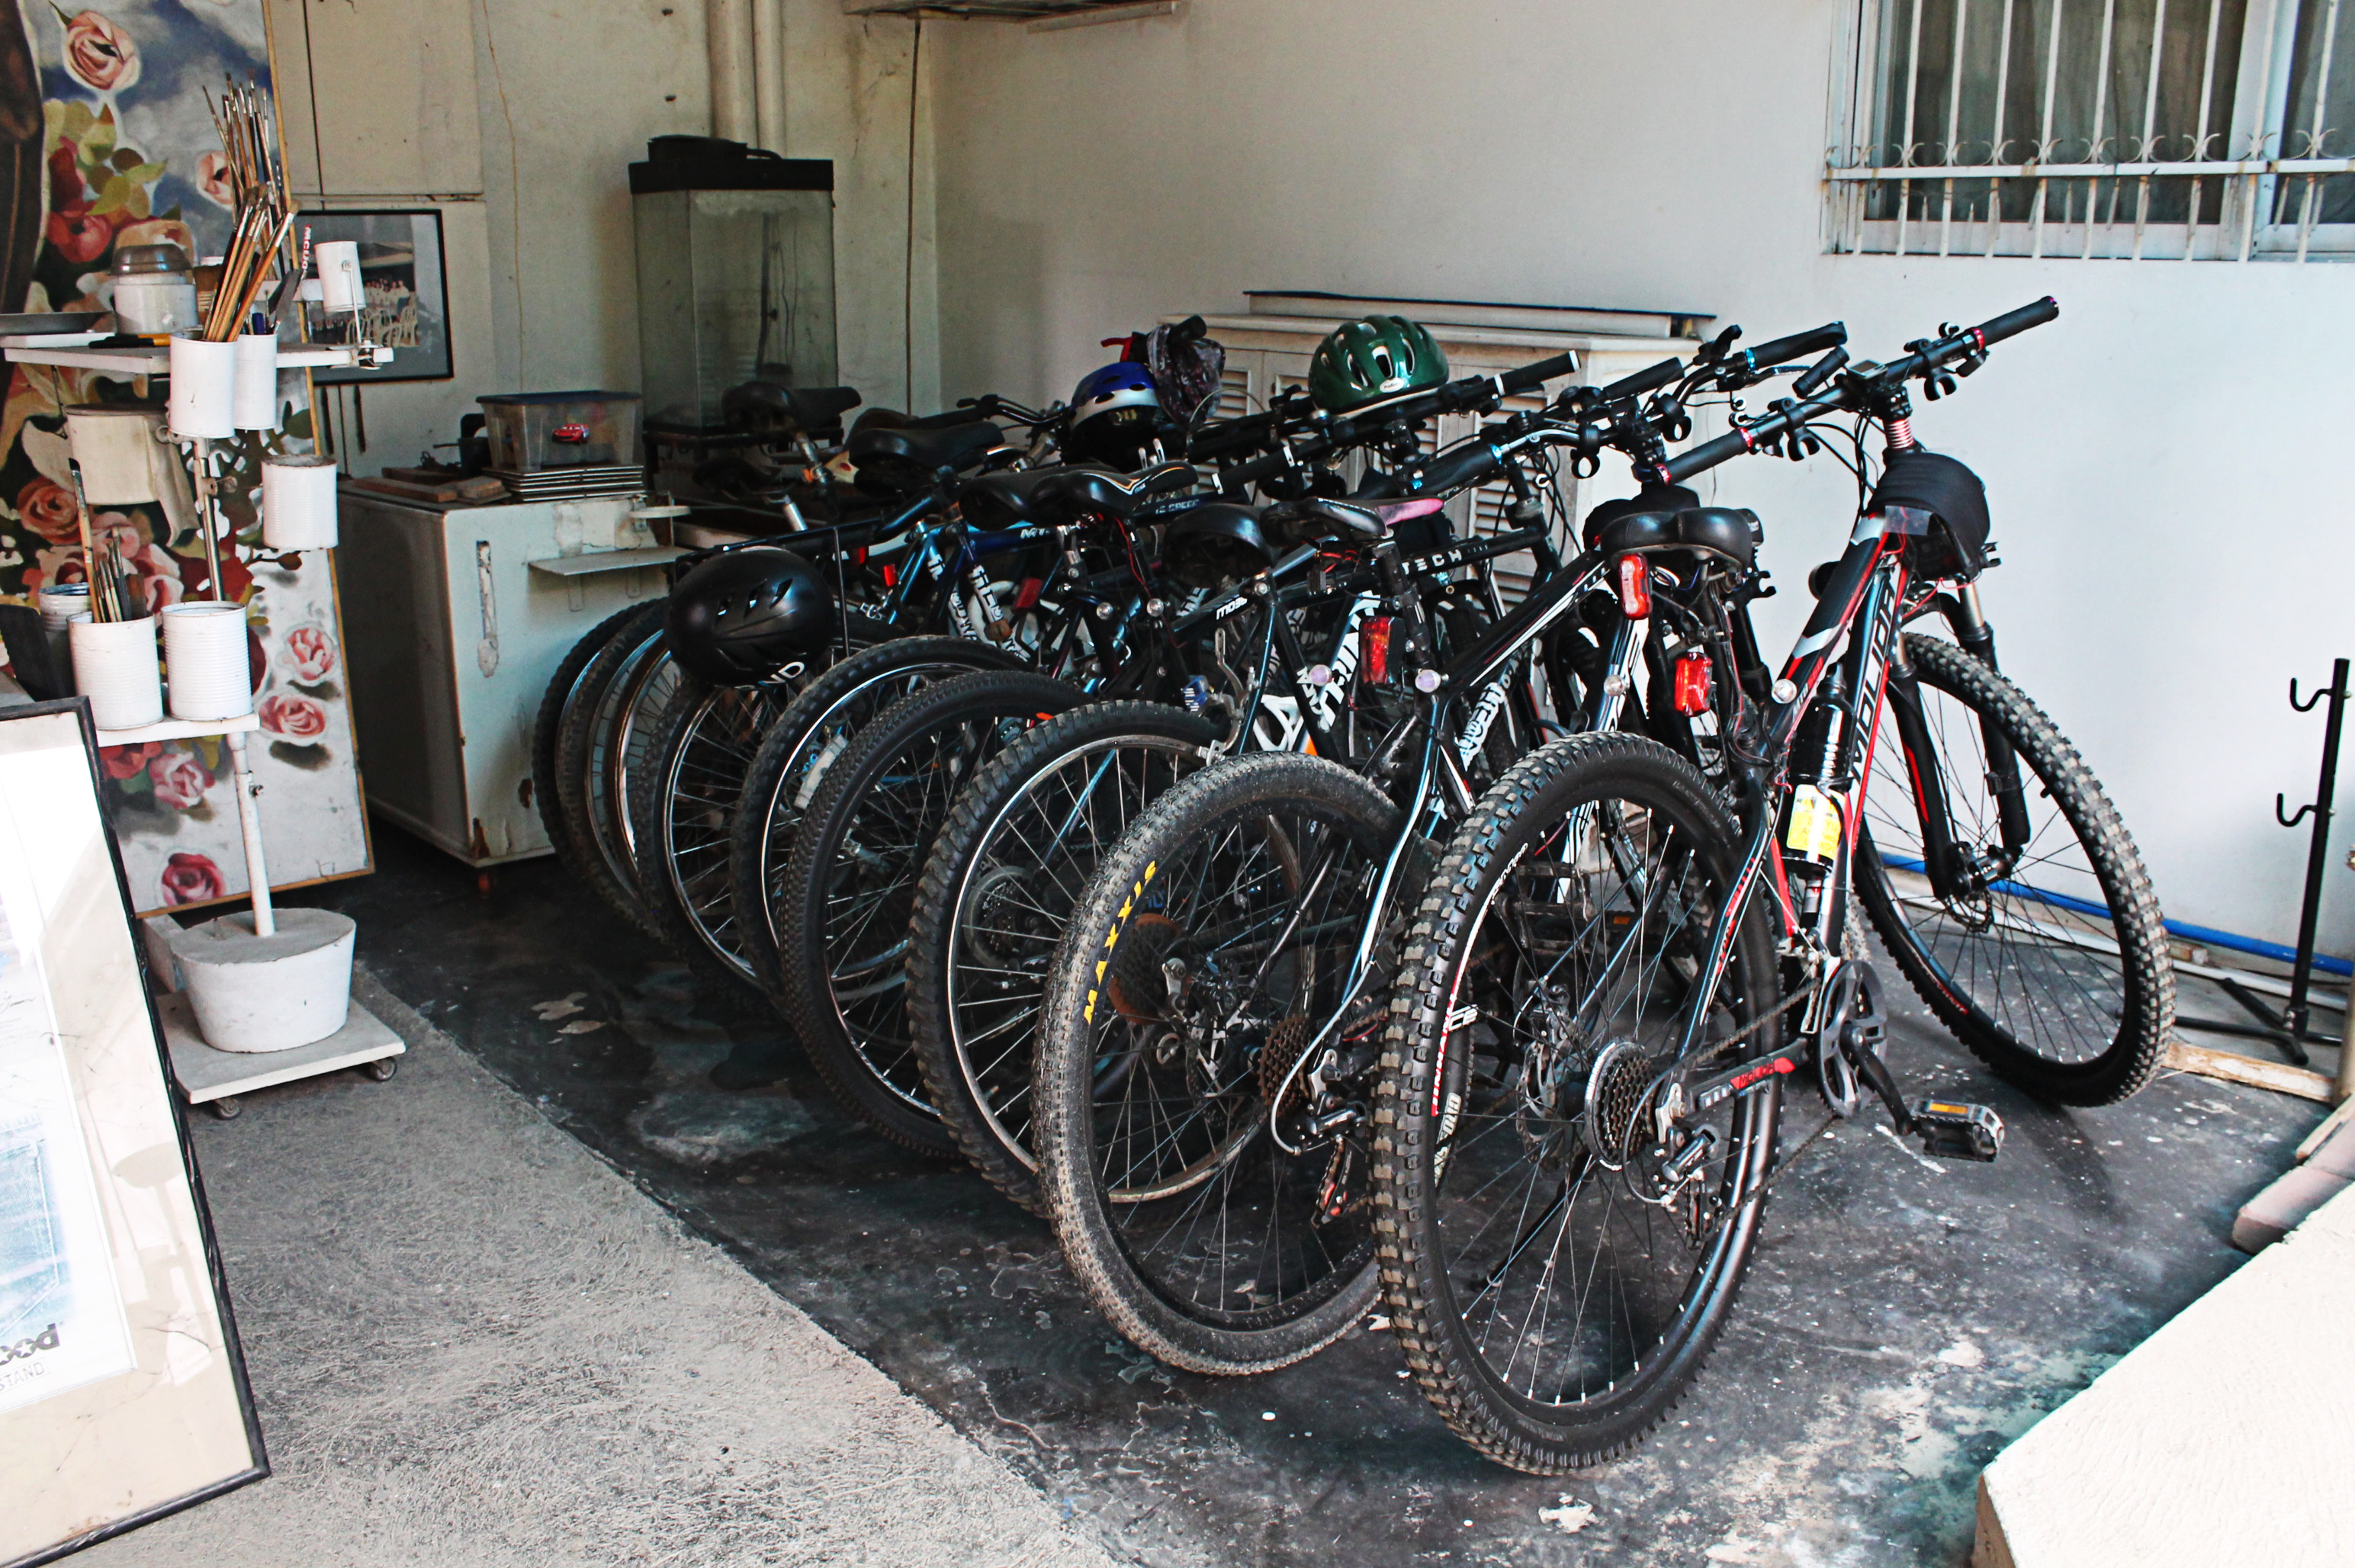 Bikes from Bikes for the Philippines